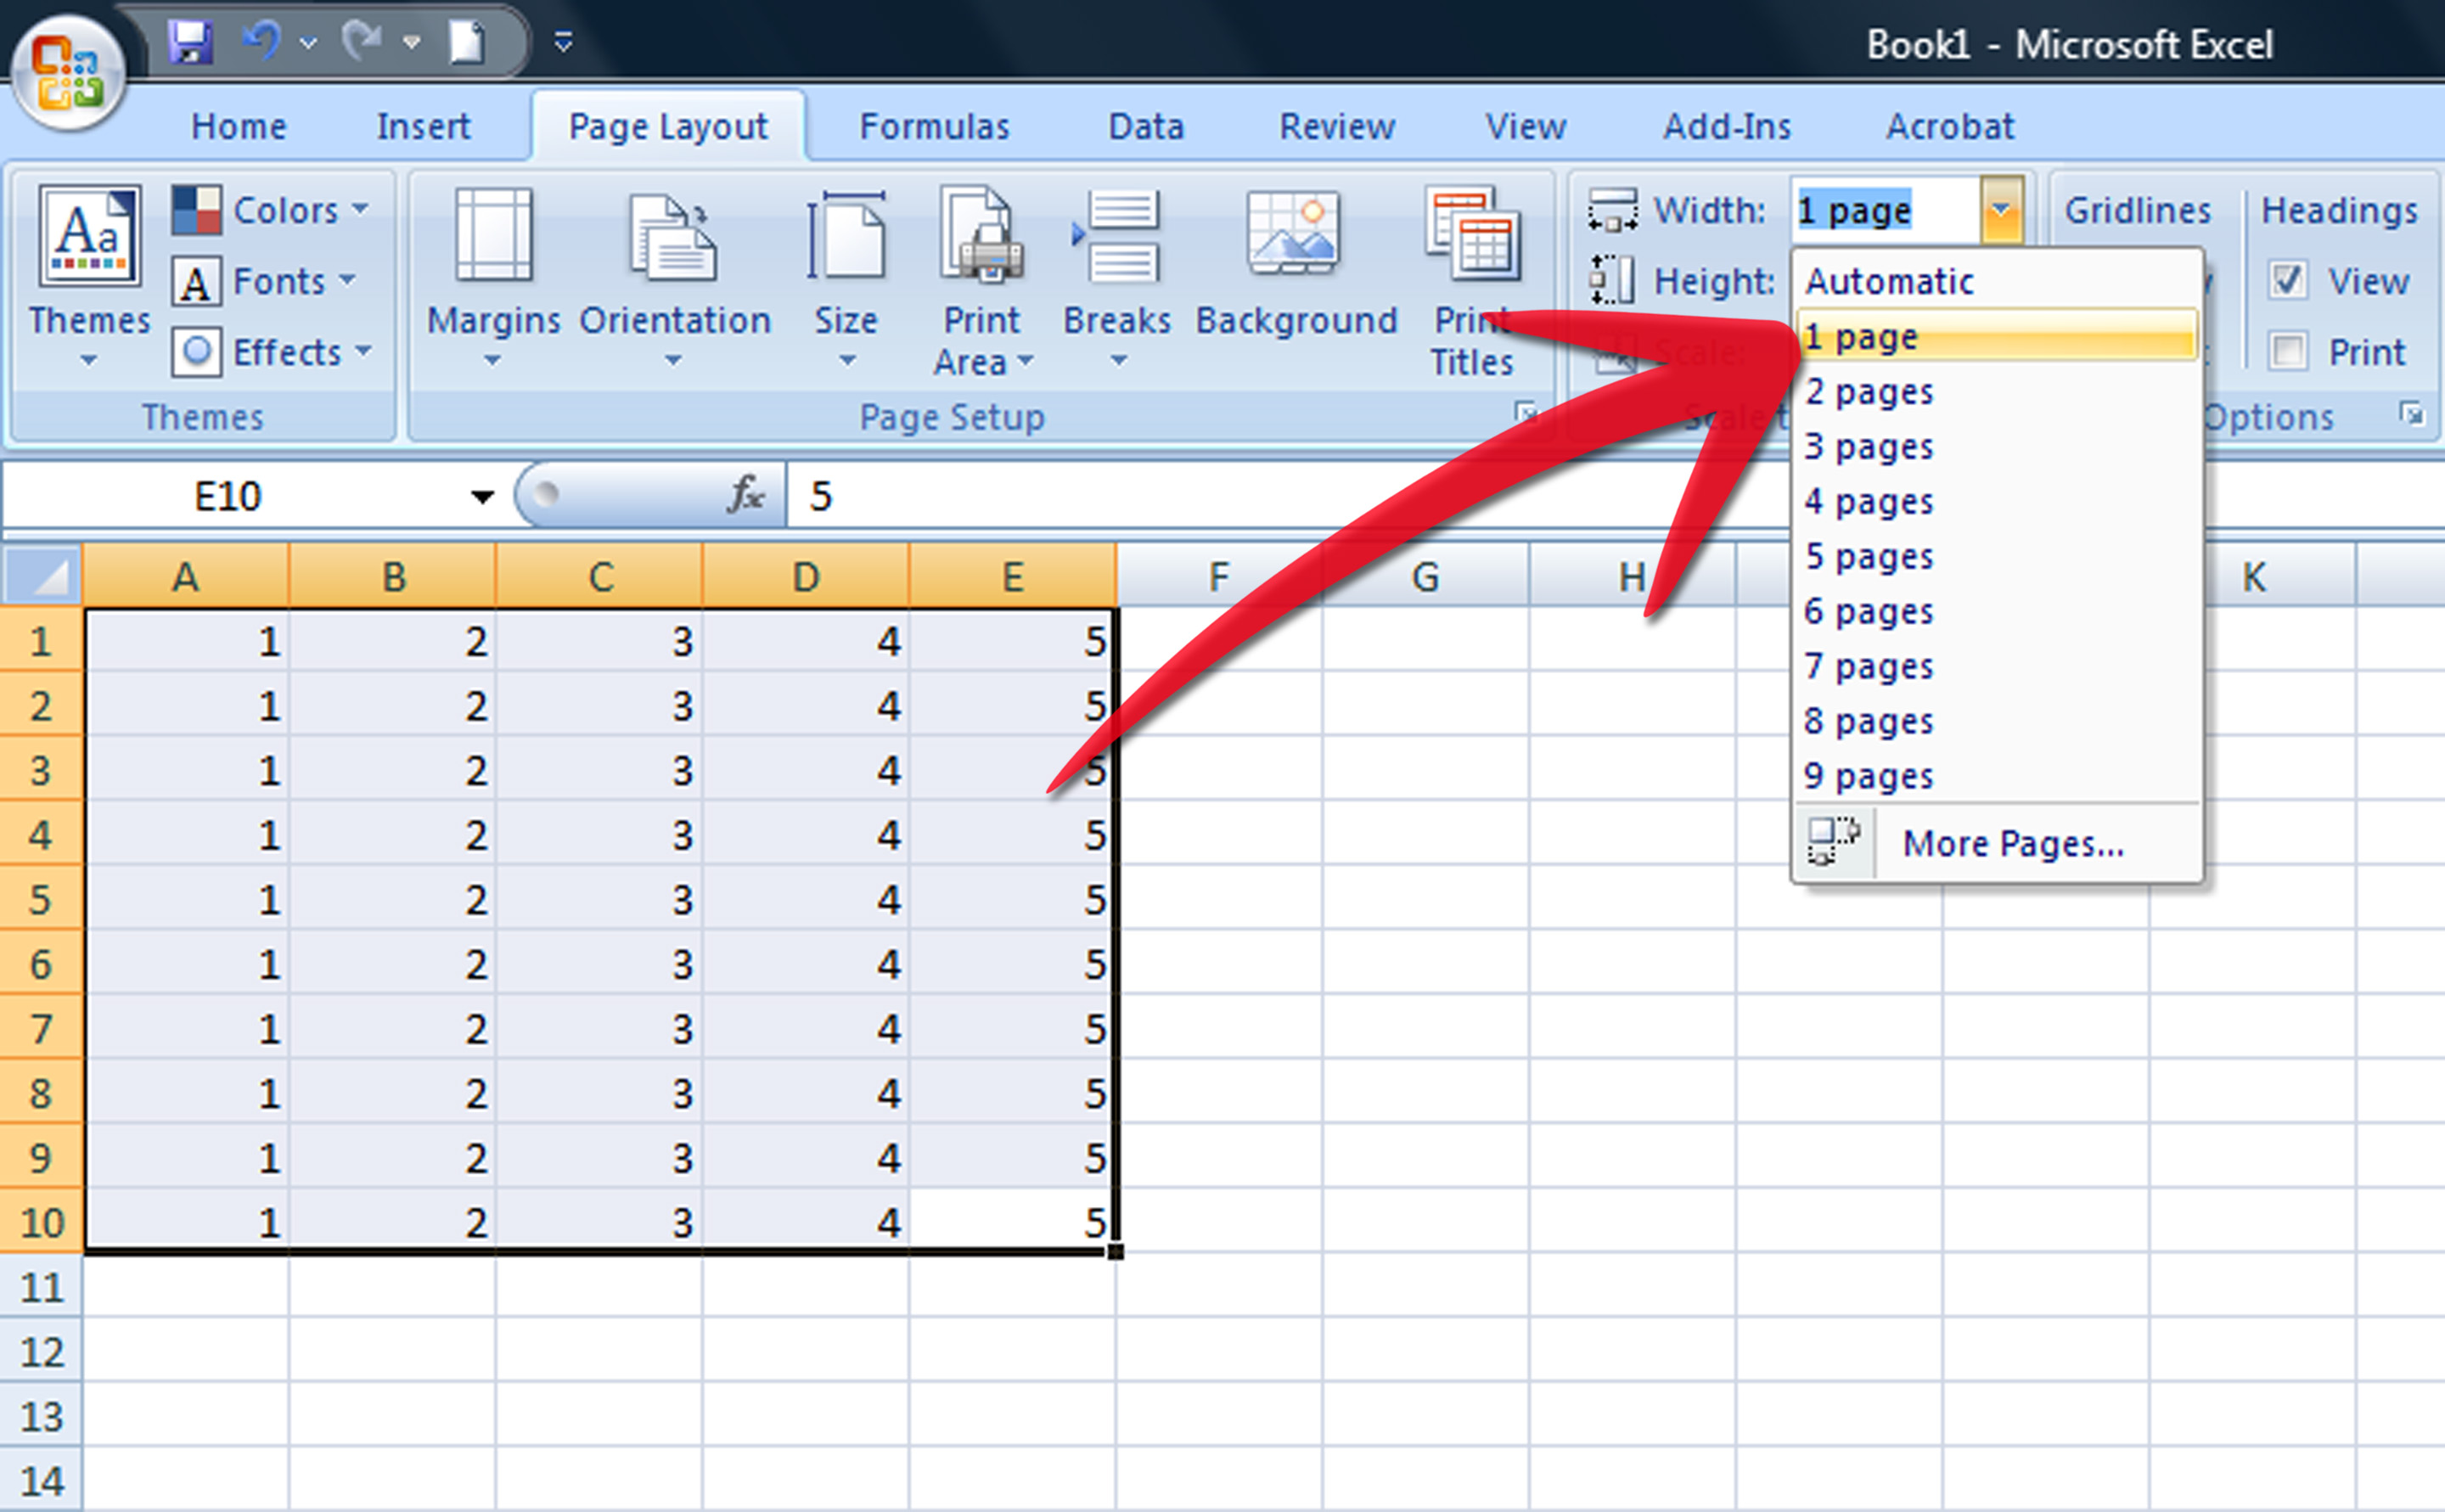 How To Print Part Of An Excel Spreadsheet